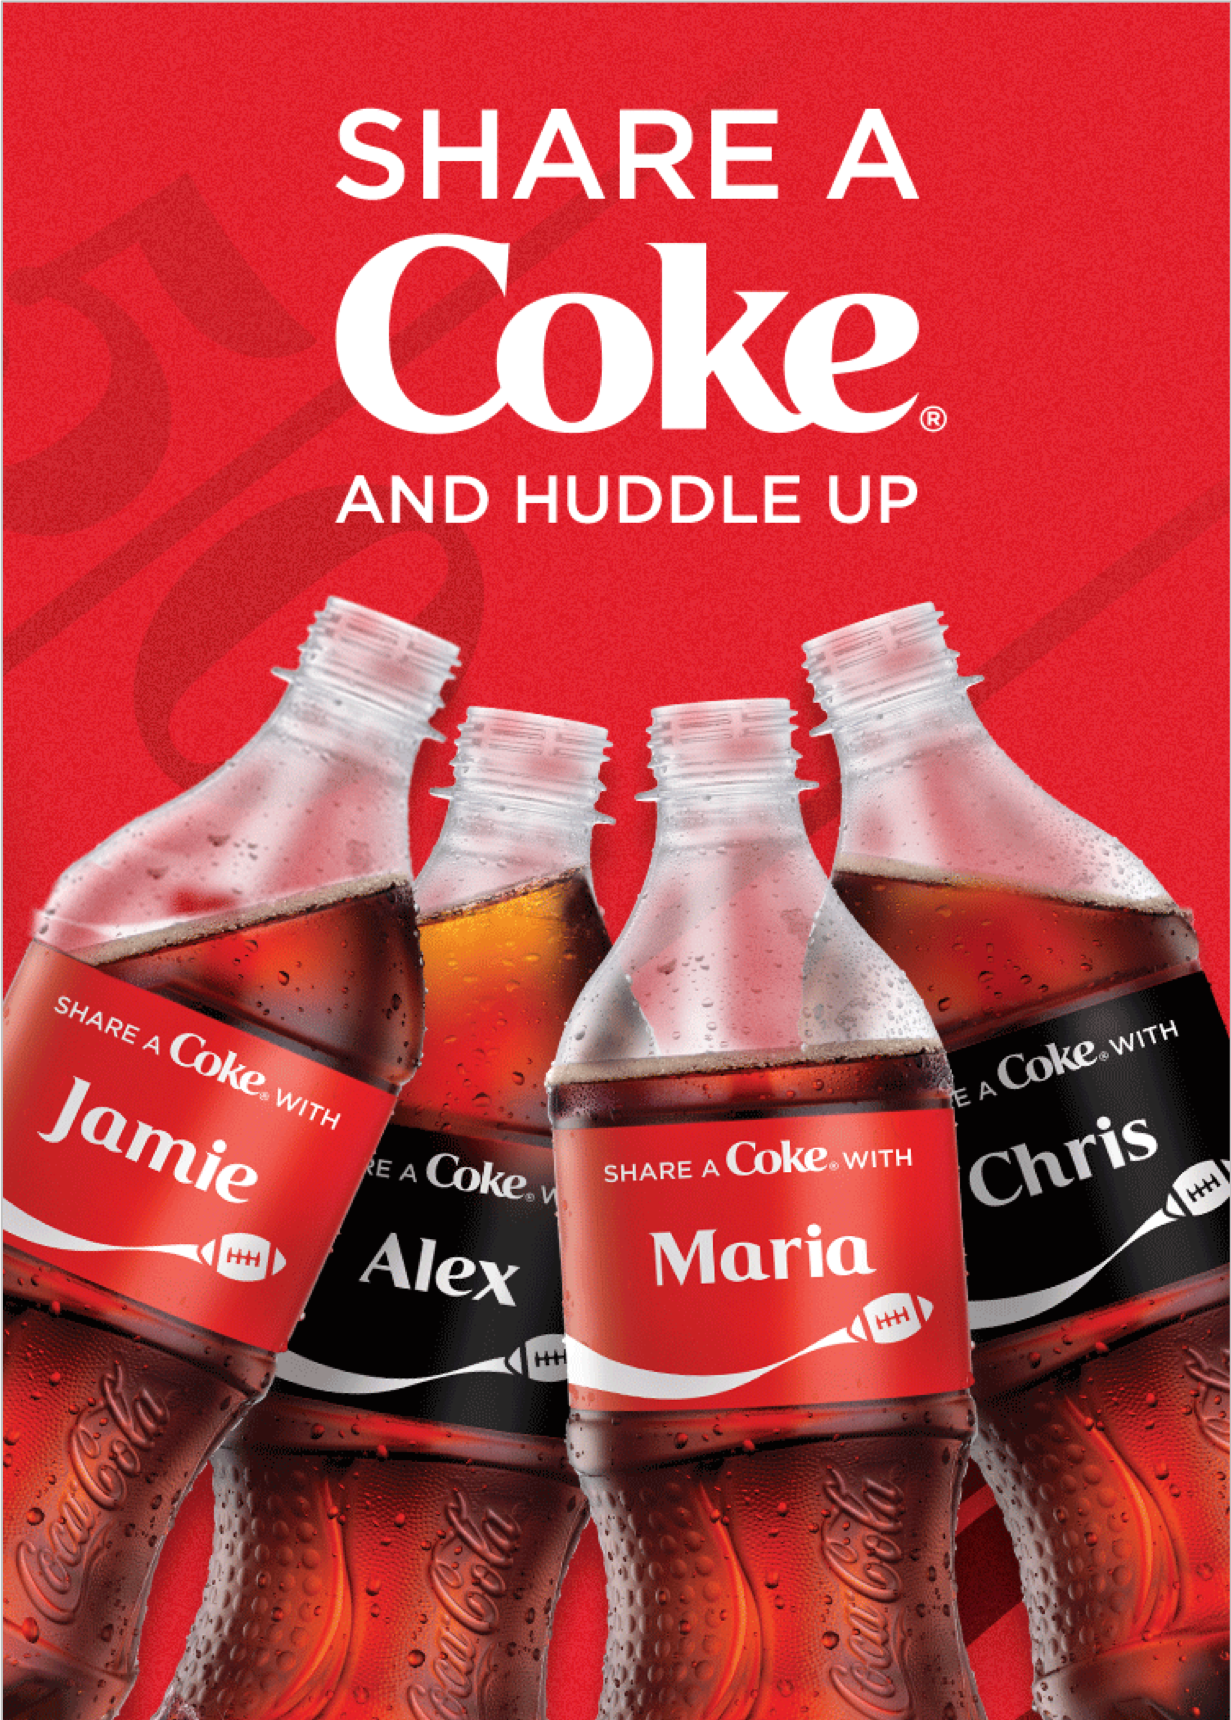 Share_a_Coke_Football_POS18.png